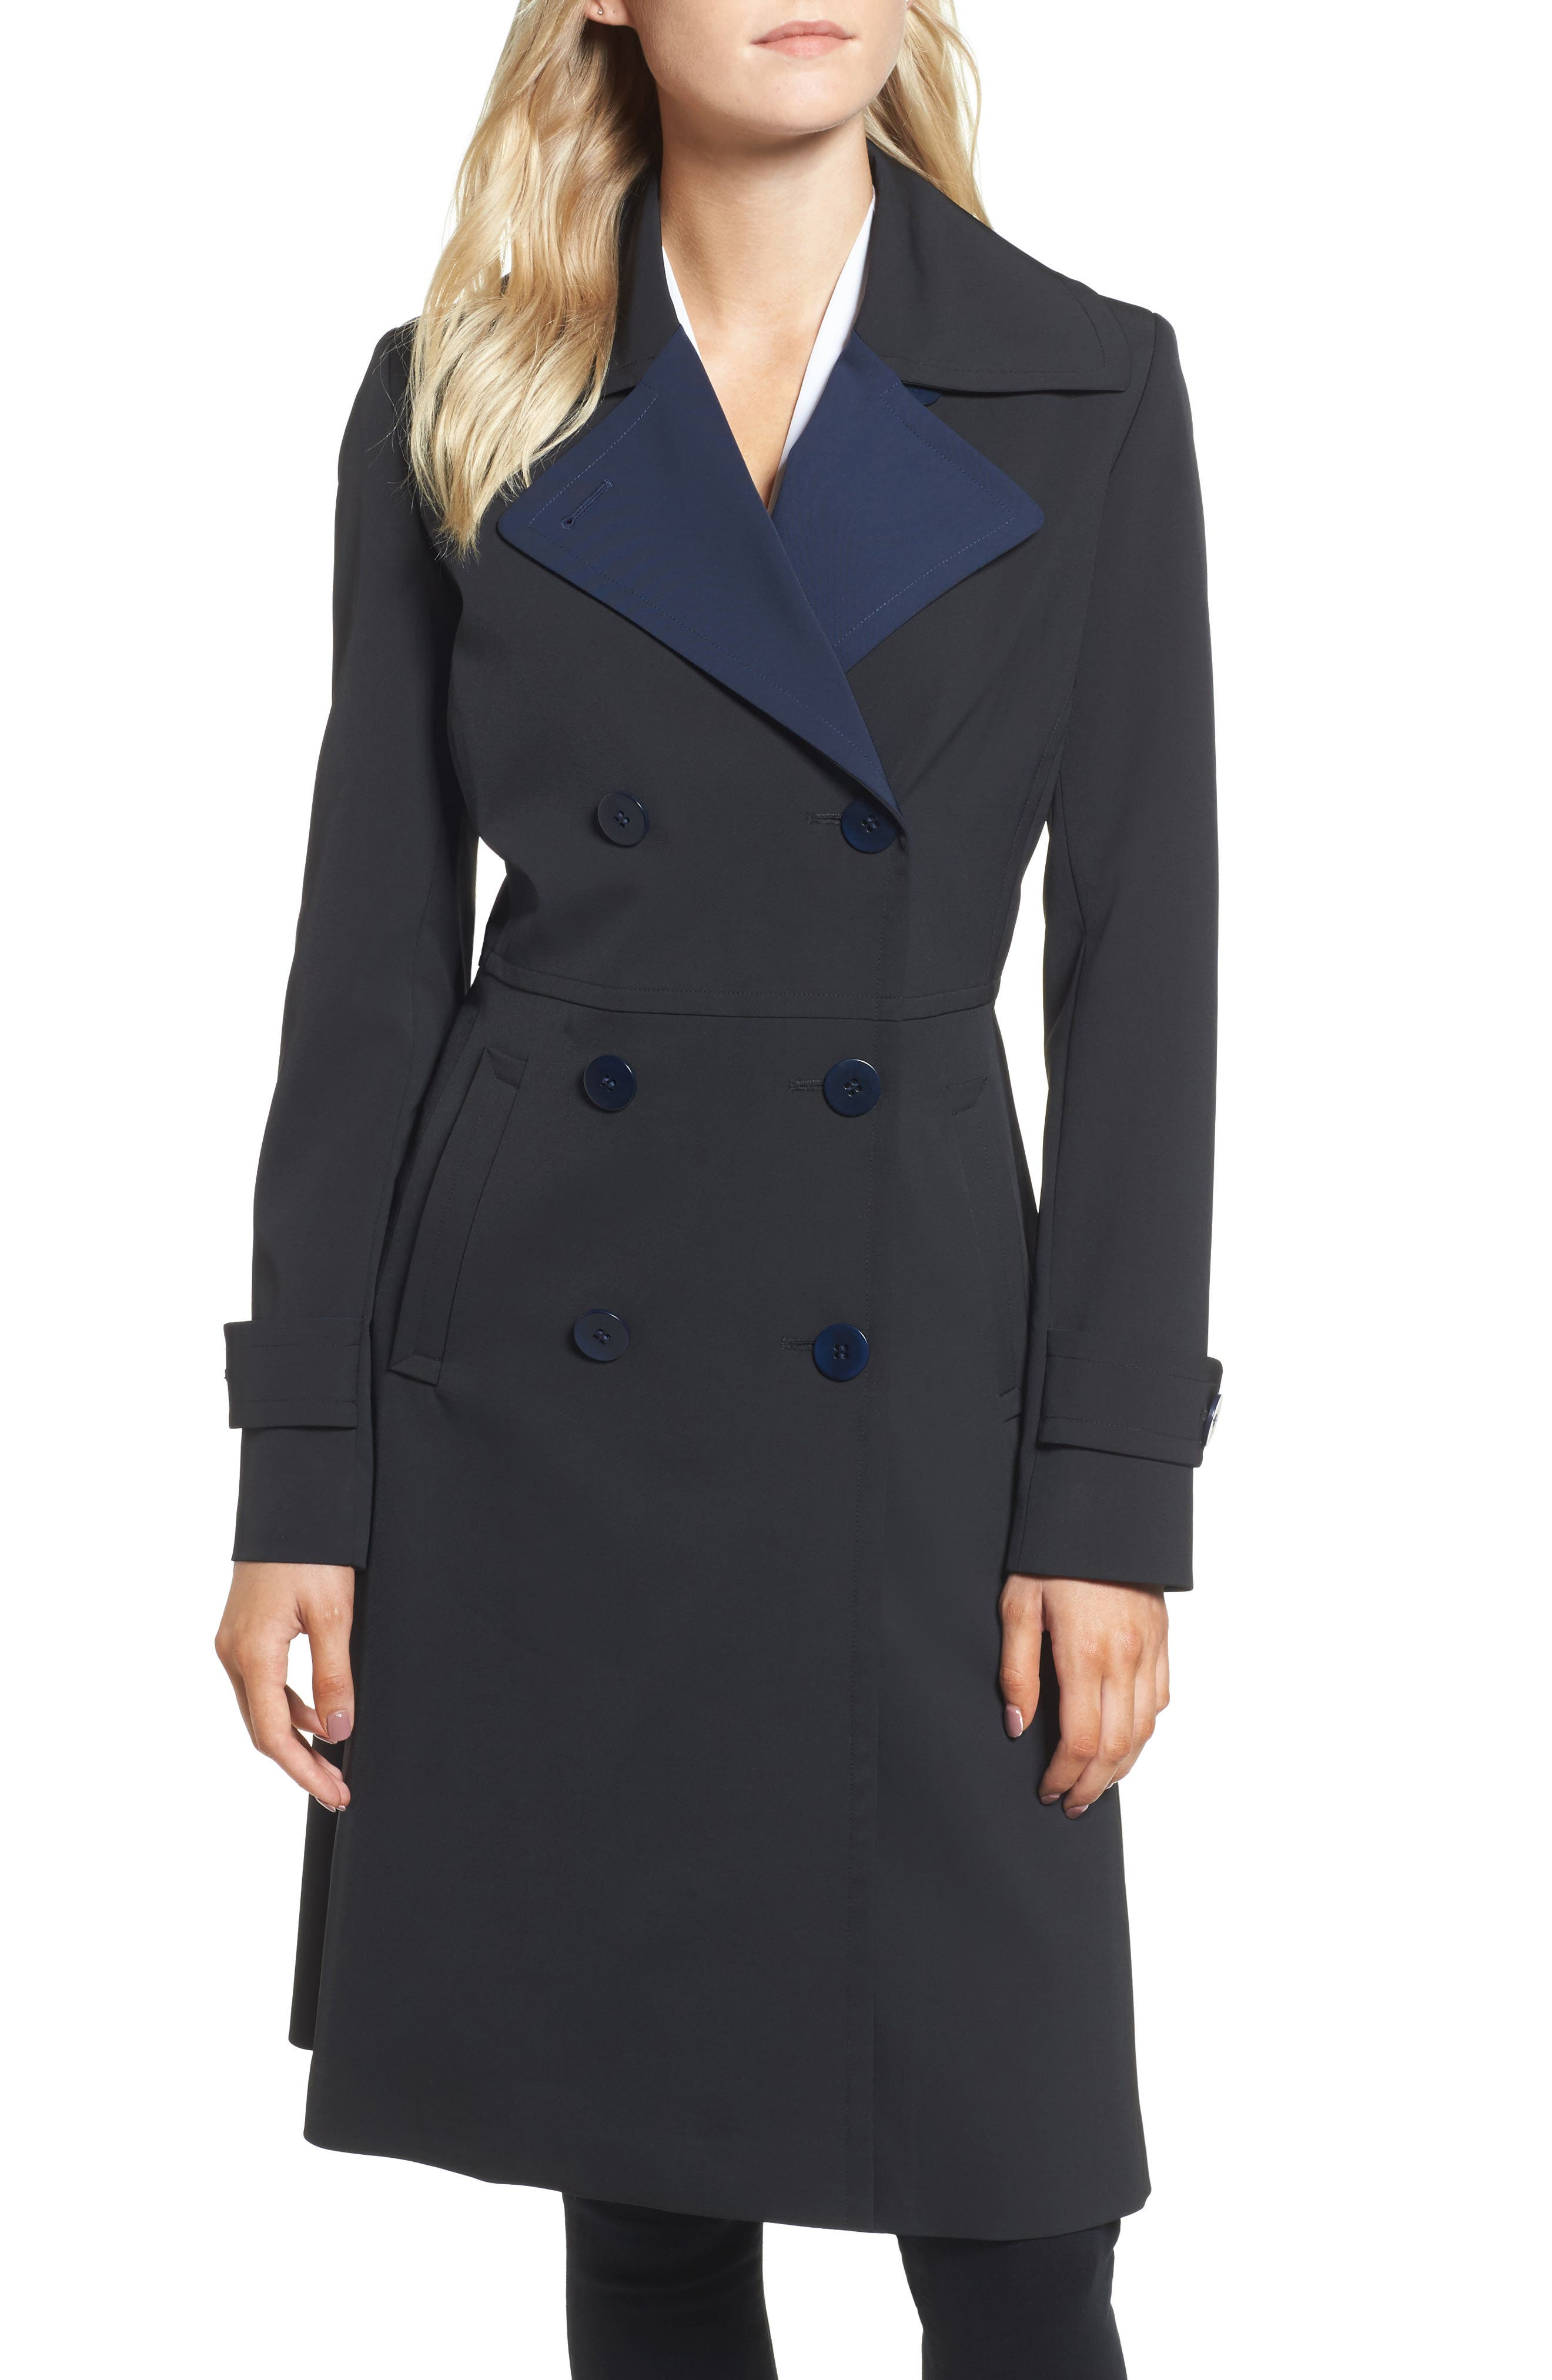 Isabella Two-Tone Double Breasted Trench Raincoat,                         Main,                         color, Black/ Navy